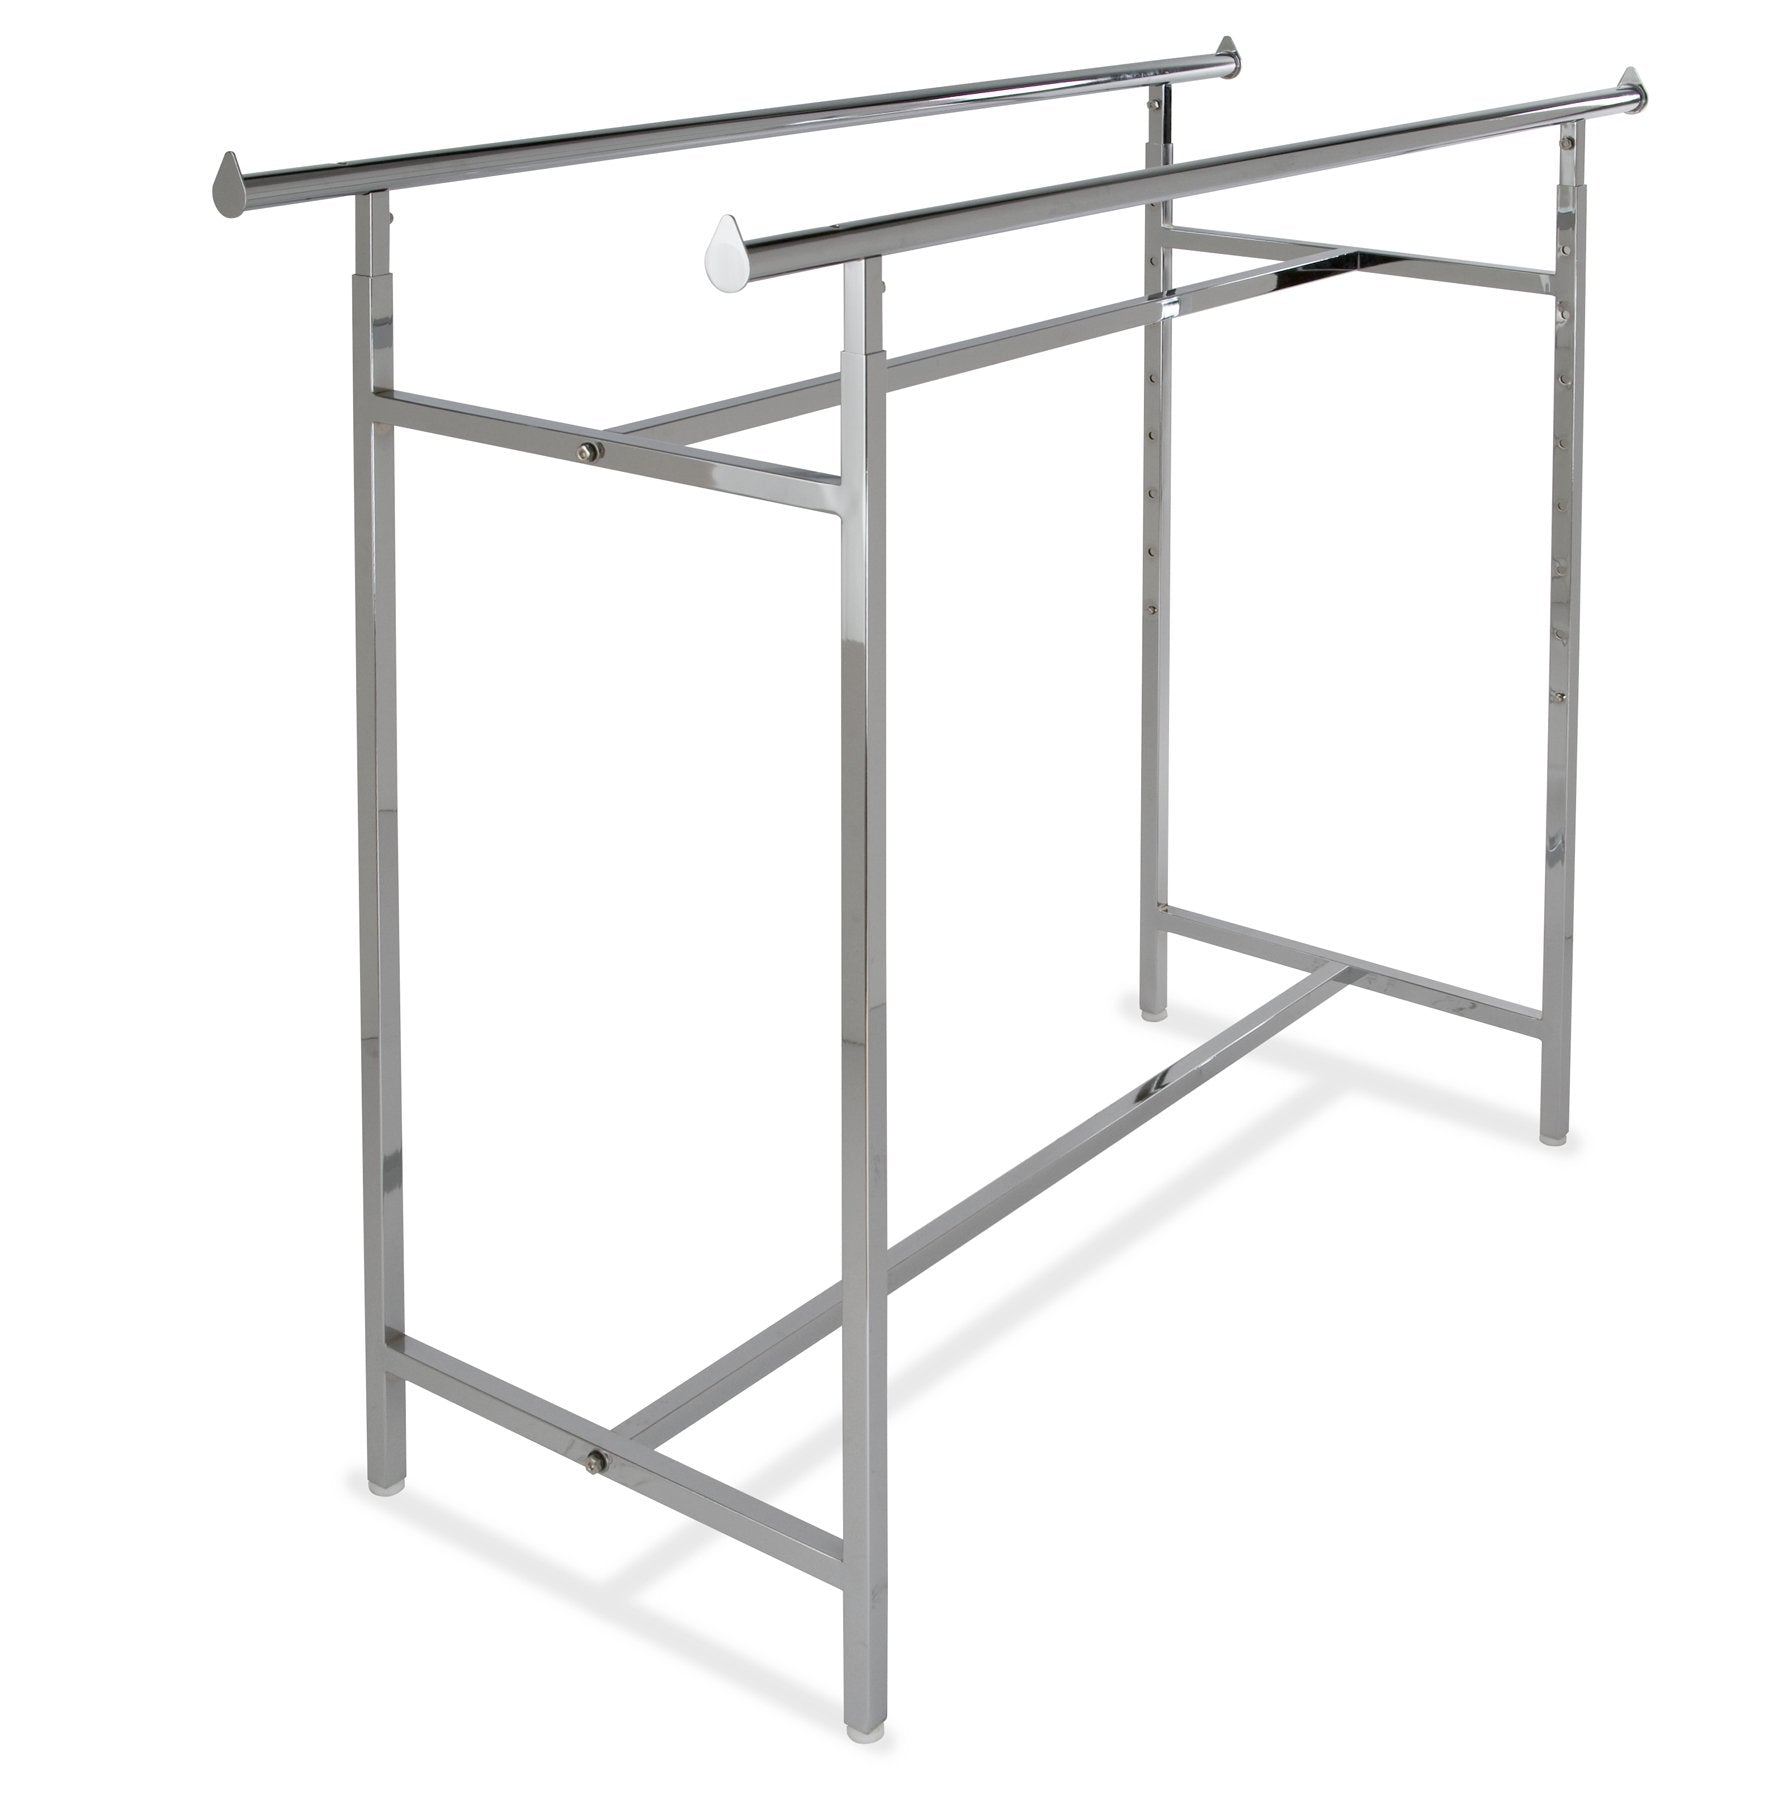 Adjustable Double Bar Rack - Las Vegas Mannequins